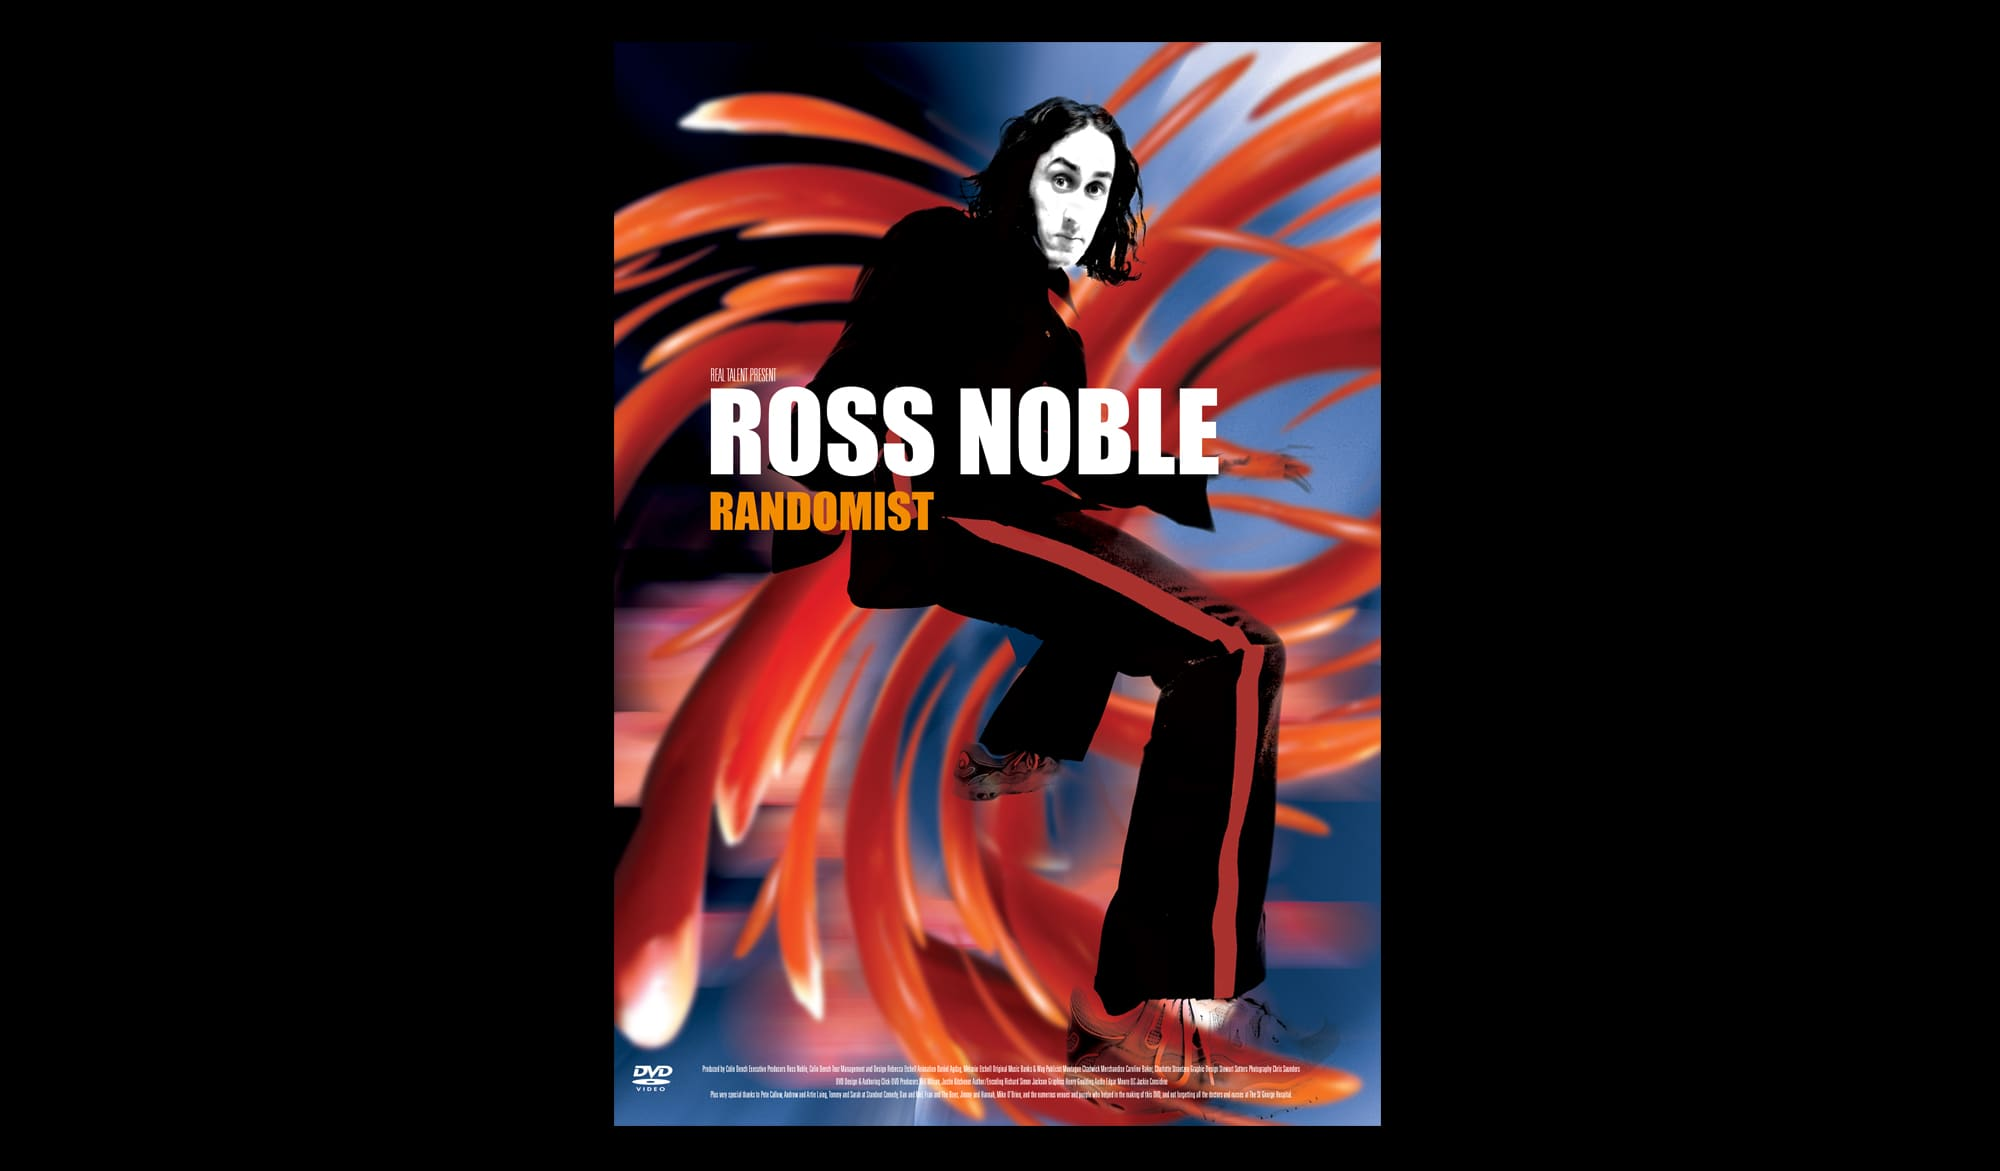 Ross noble wall poster